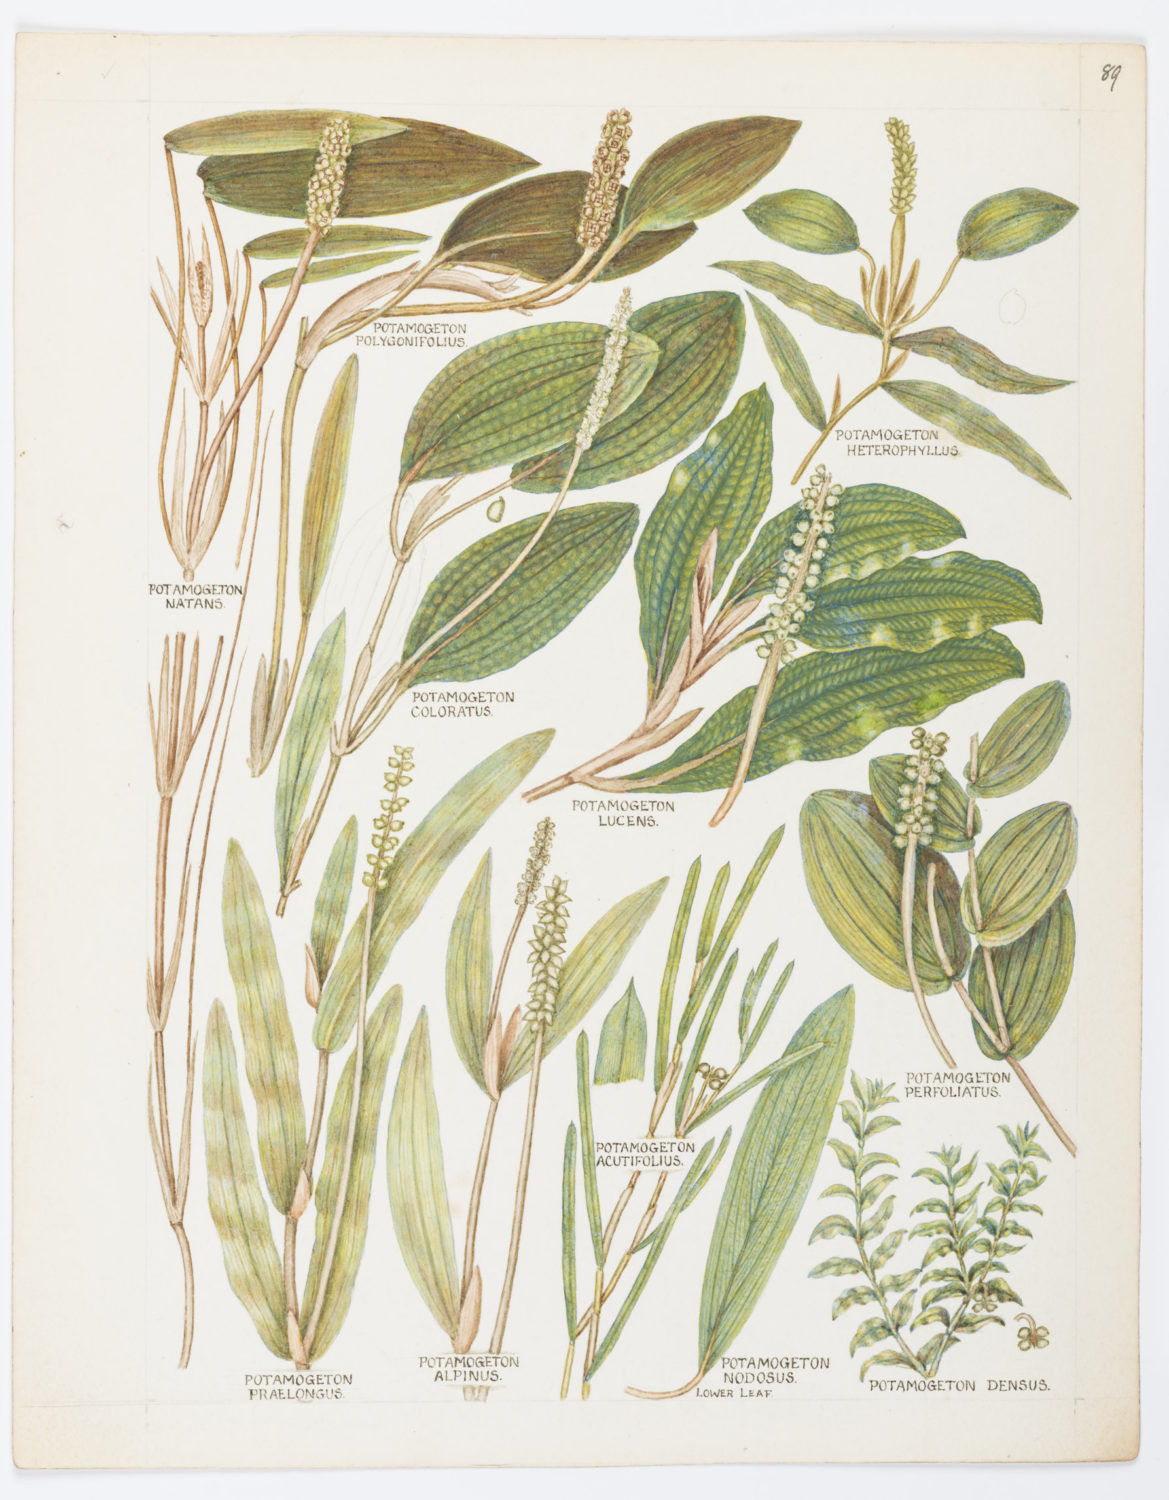 A botanical illustration by Keble Martin